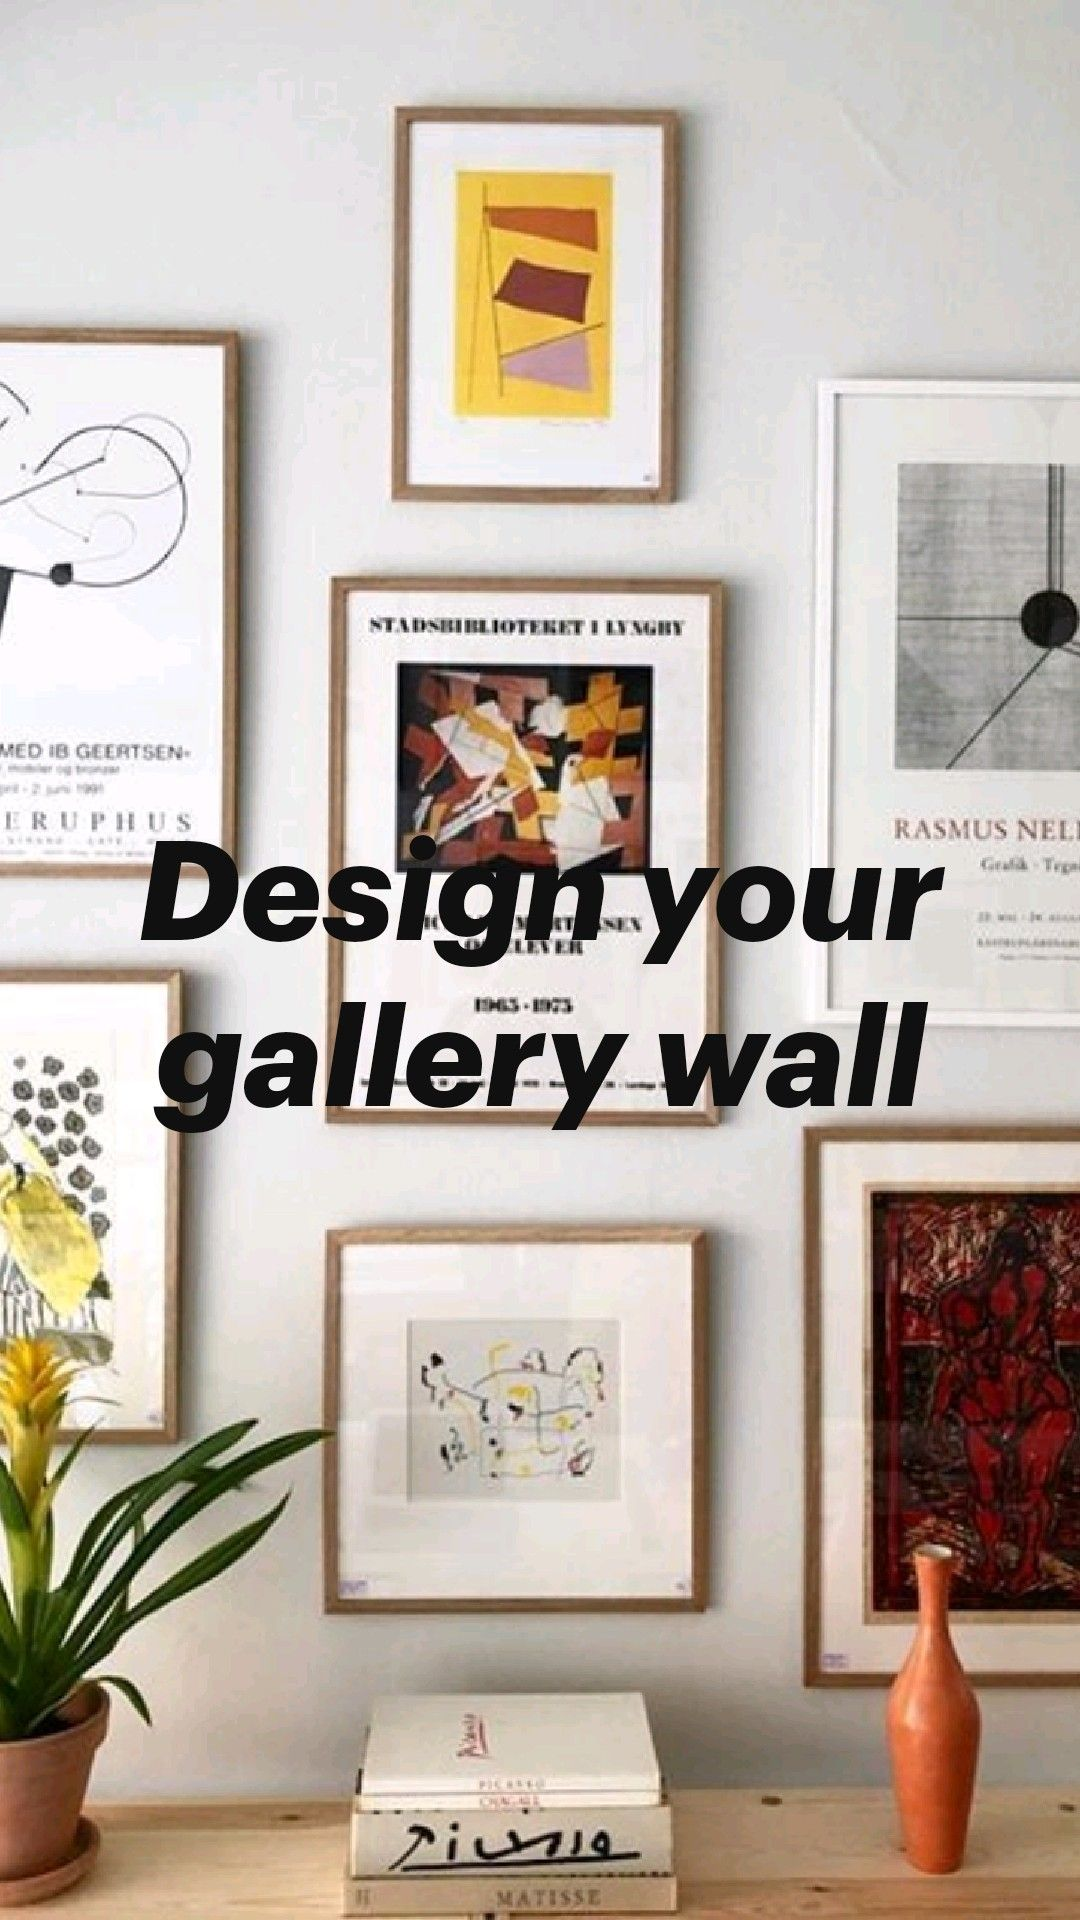 Design your gallery wall